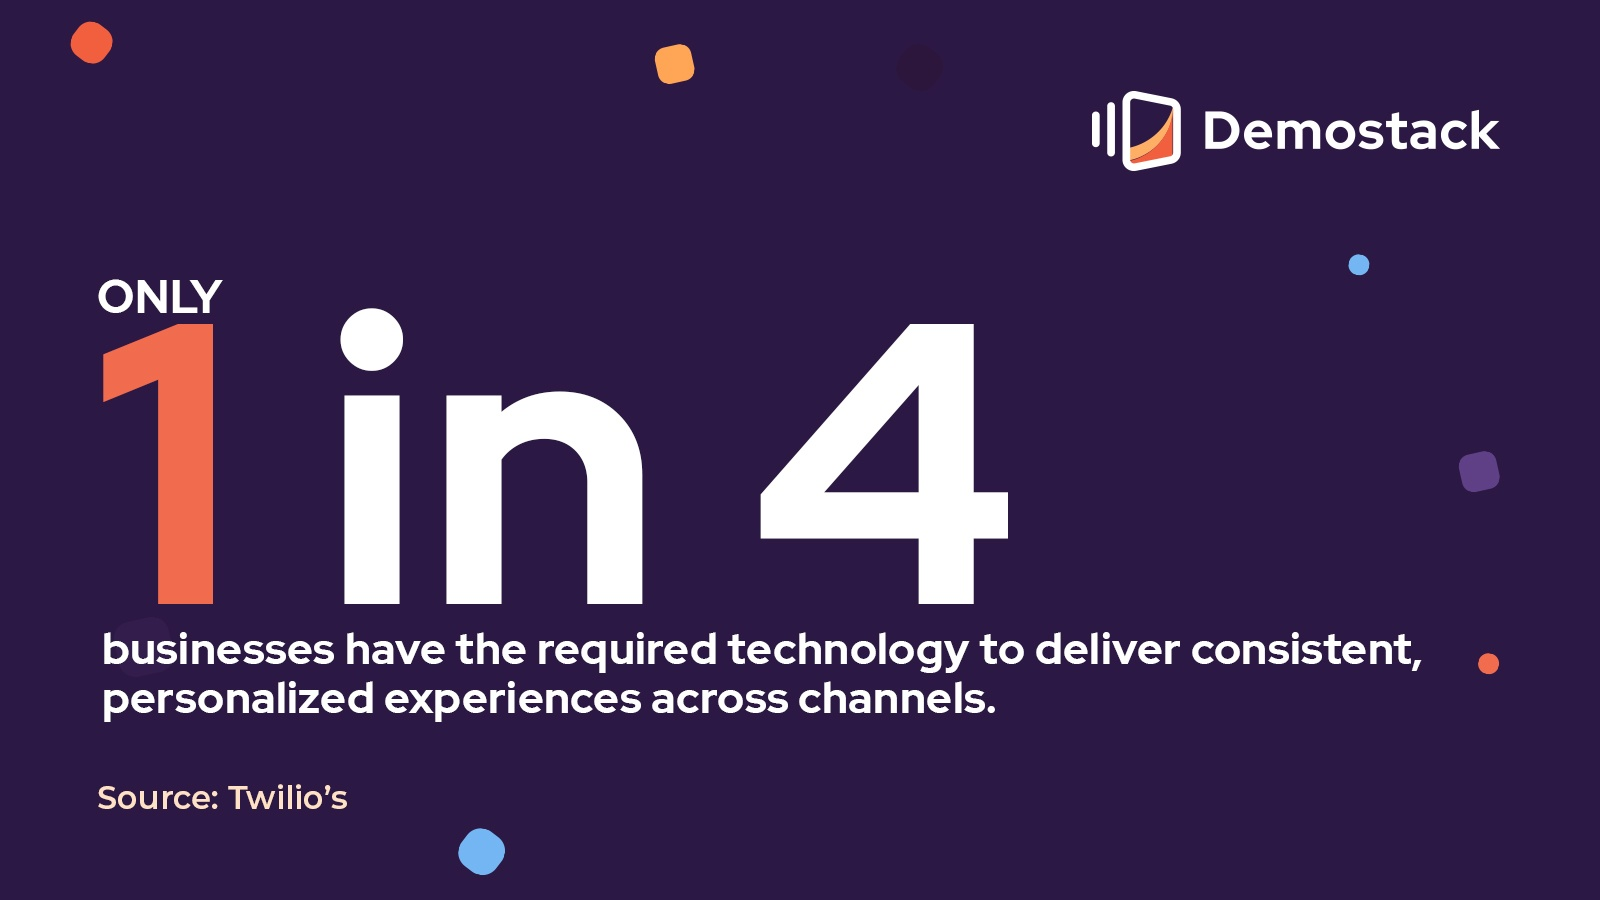 According to Twilio's 2021 State of Personalization report, only one in four businesses have the required technology to deliver consistent, personalized experiences across channels.